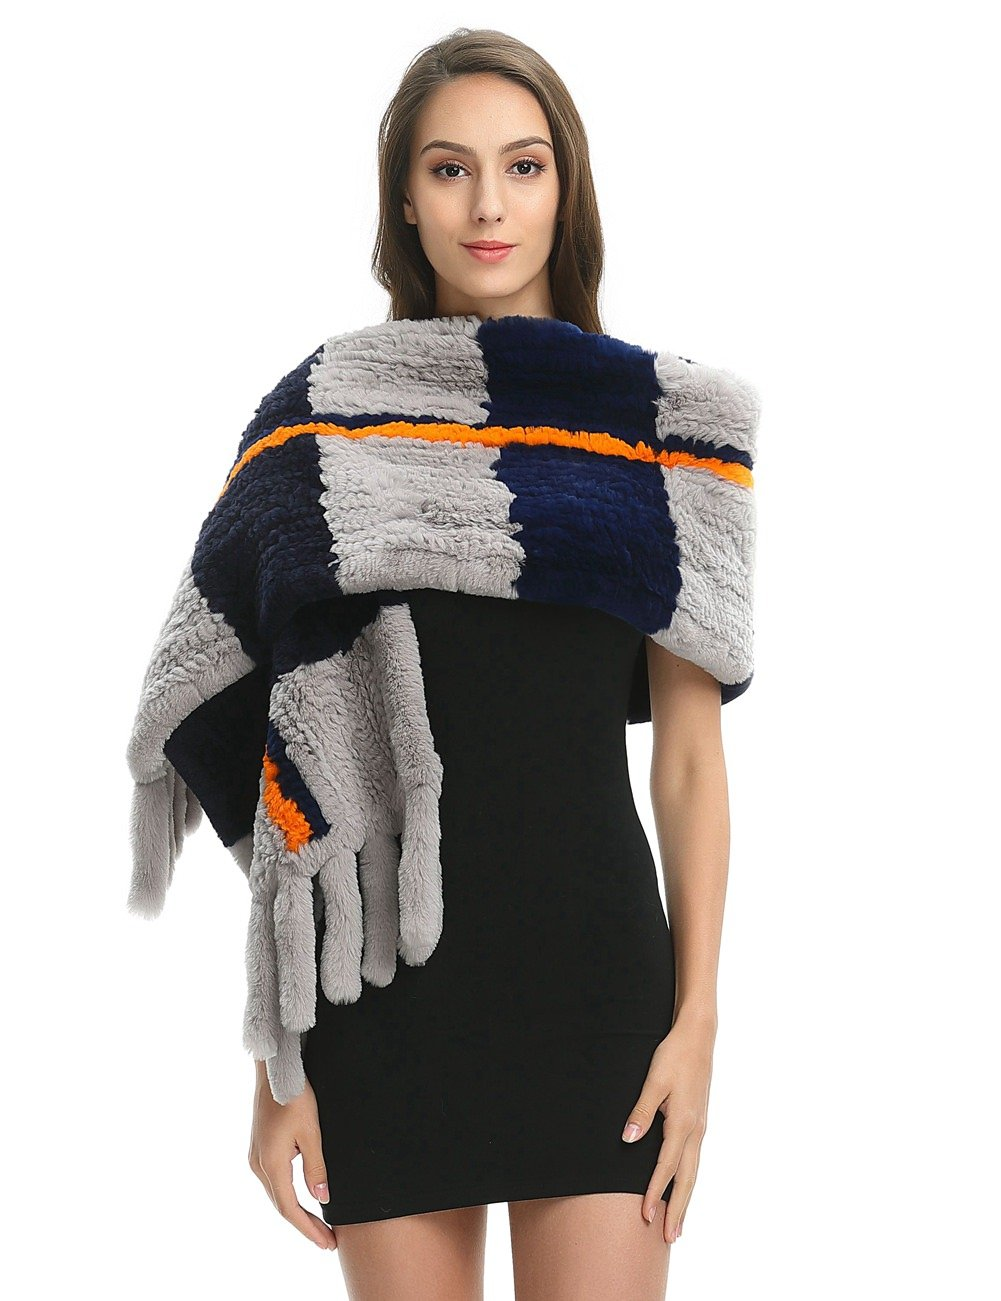 Ferand Women's Luxury Soft Genuine Rex Rabbit Fur Warm Shawl Scarf With Tassels for Winter, One size, Multicoloured navy blue(Rex rabbit fur)